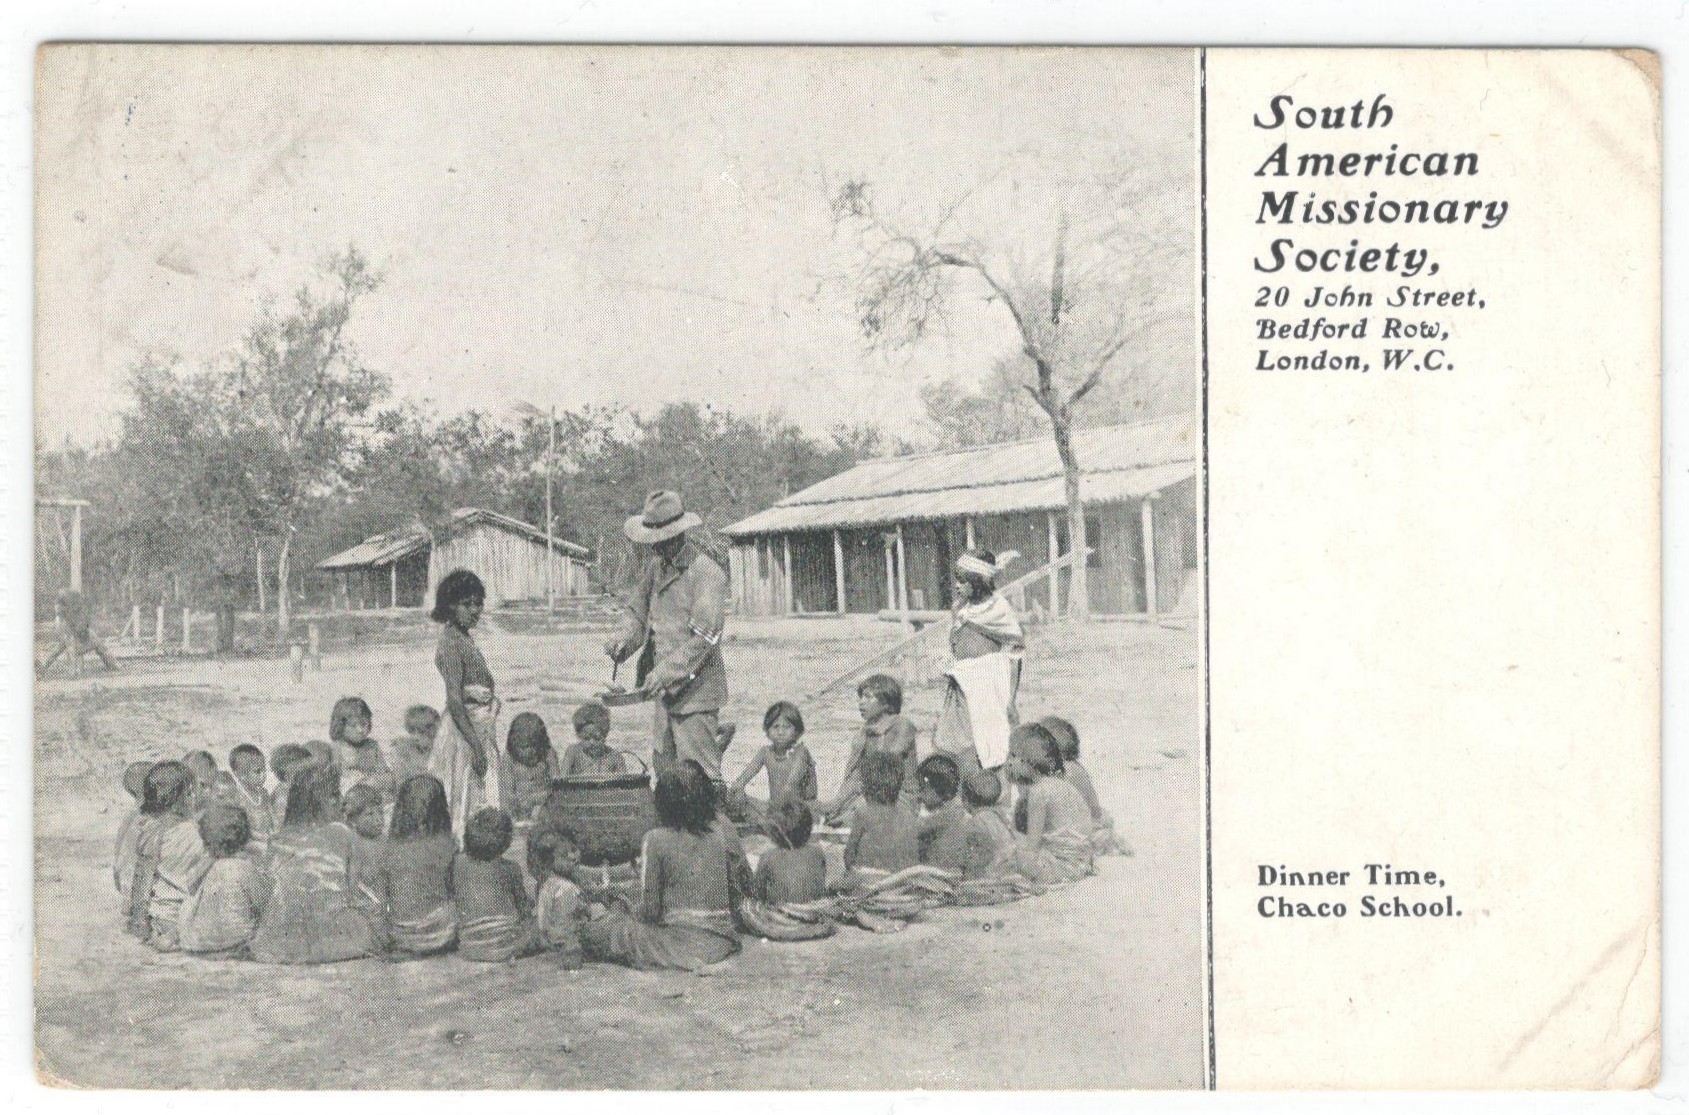 Lot 96 - SOUTH AMERICAN MISSIONARY SOCIETY - DINNER TIME CHACO SCHOOL - POSTED & IN ACCEPTABLE CONDITION